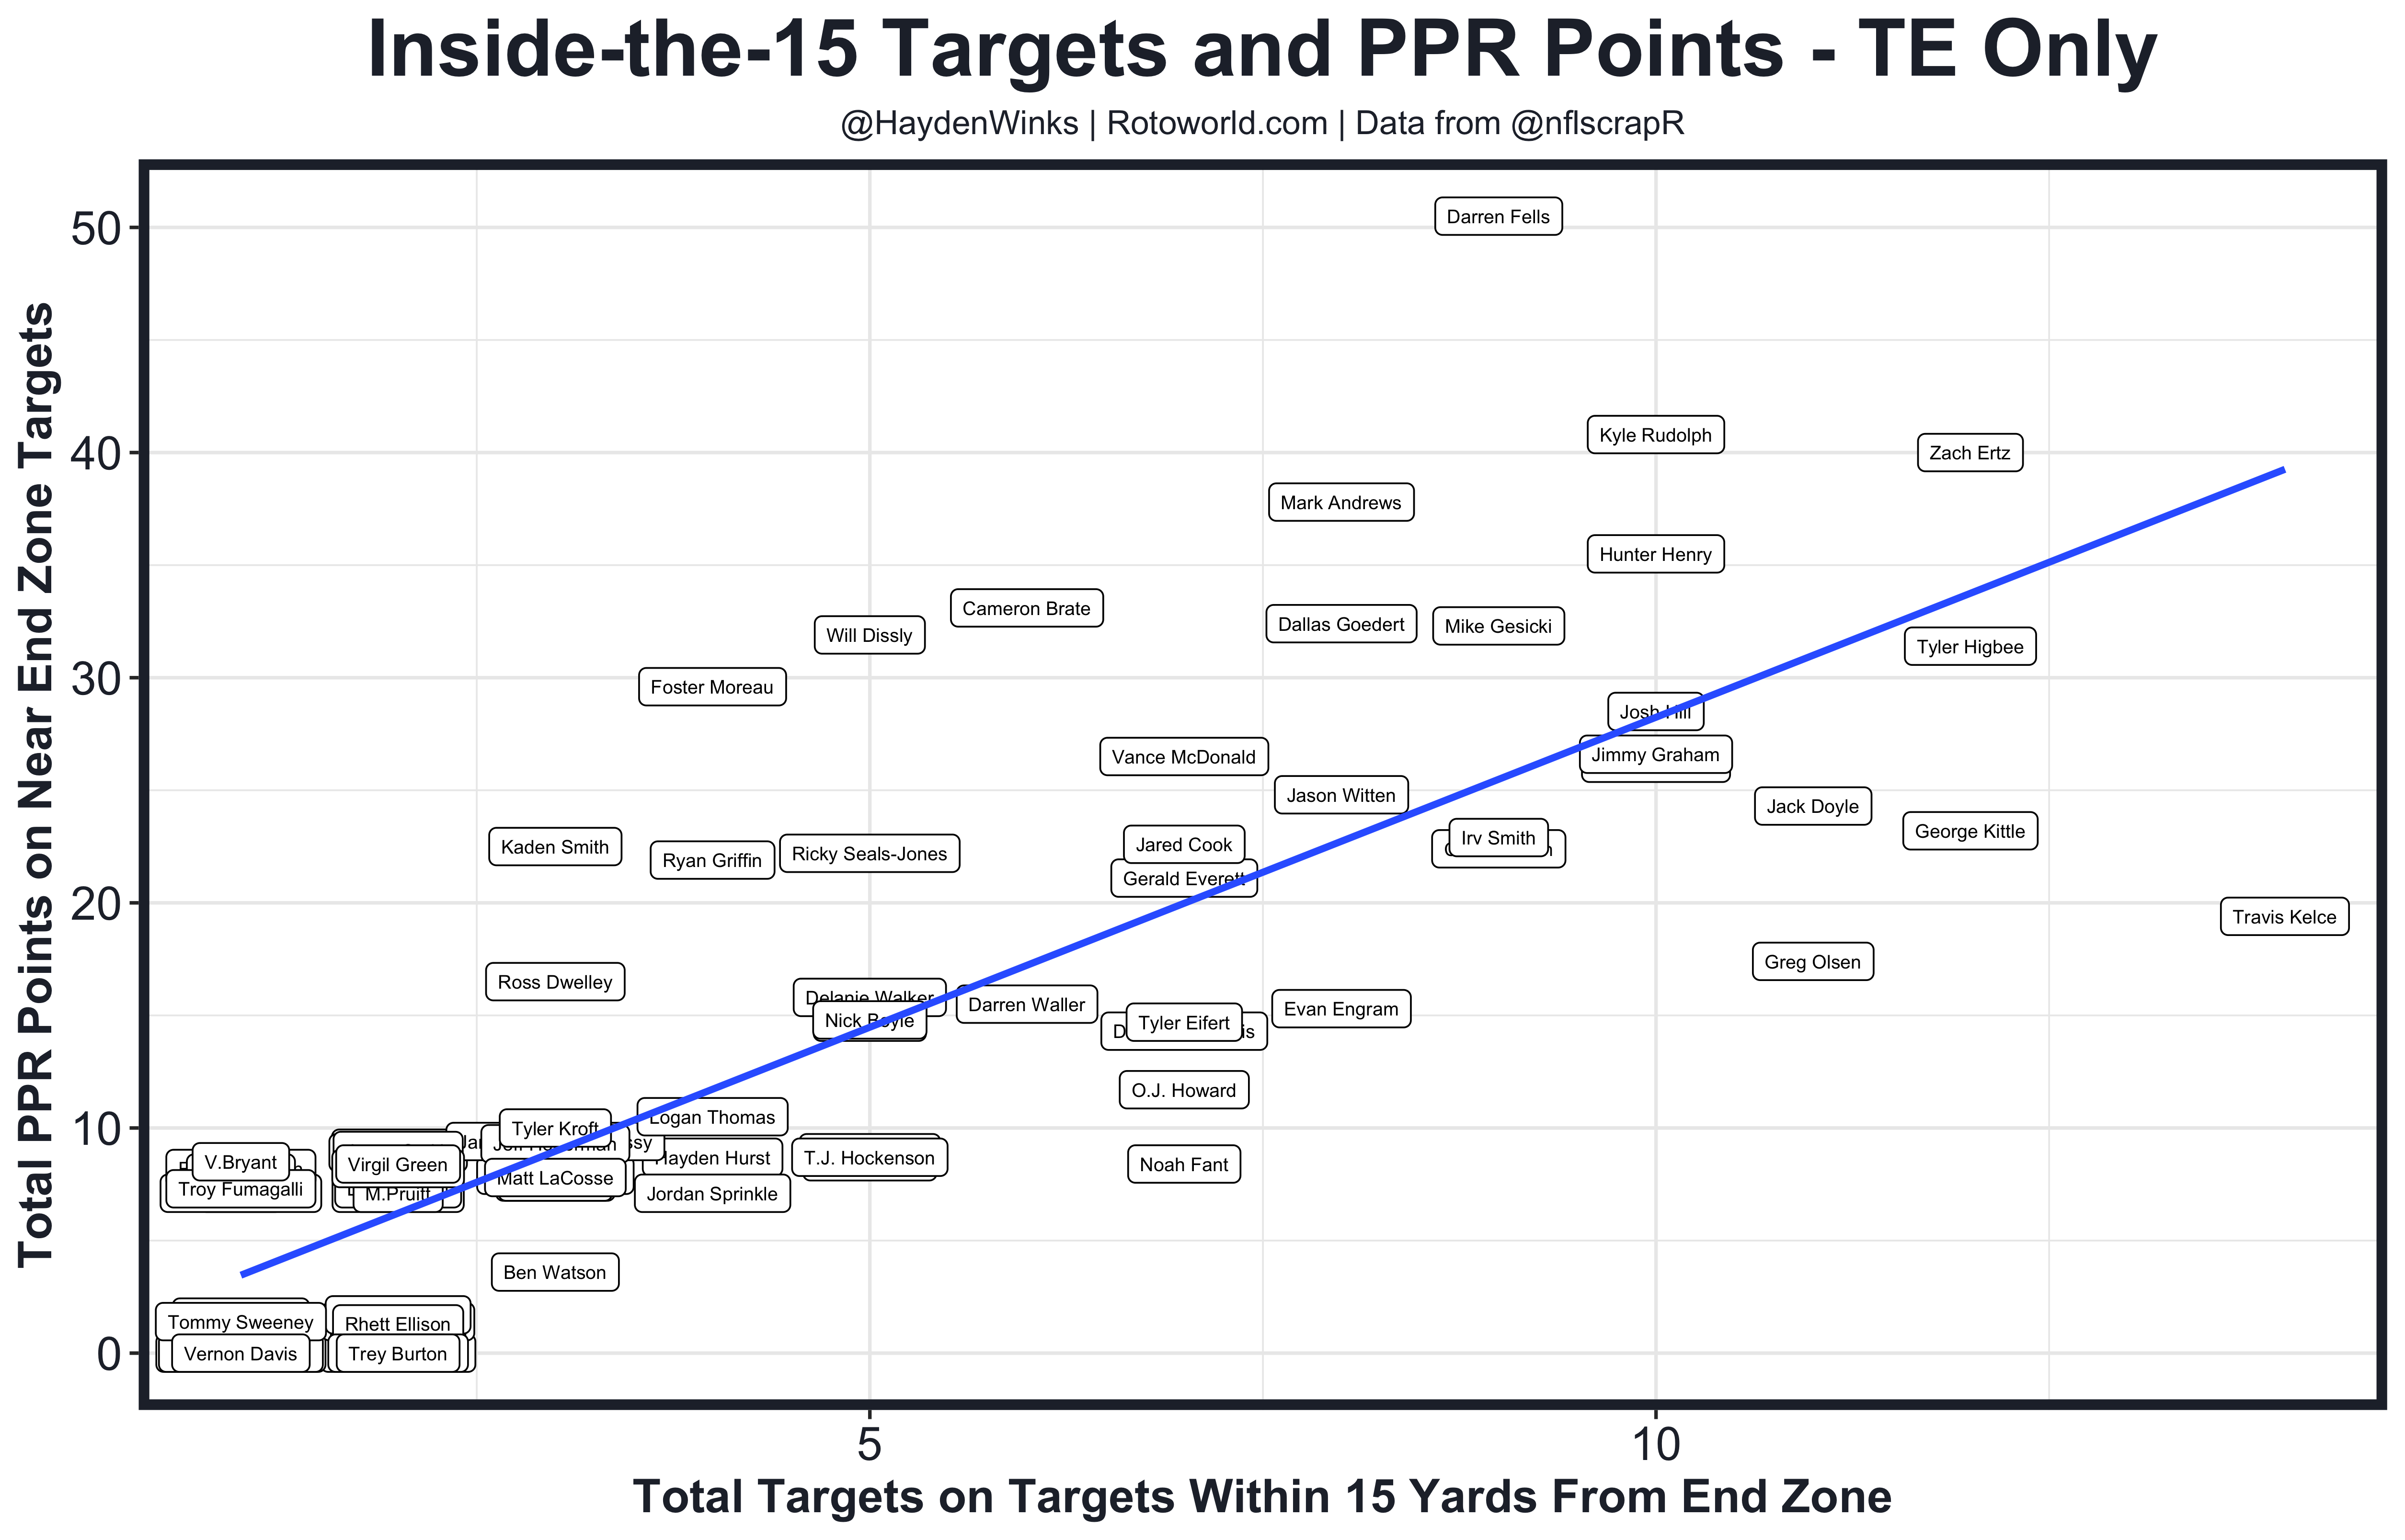 TD Regression TEs